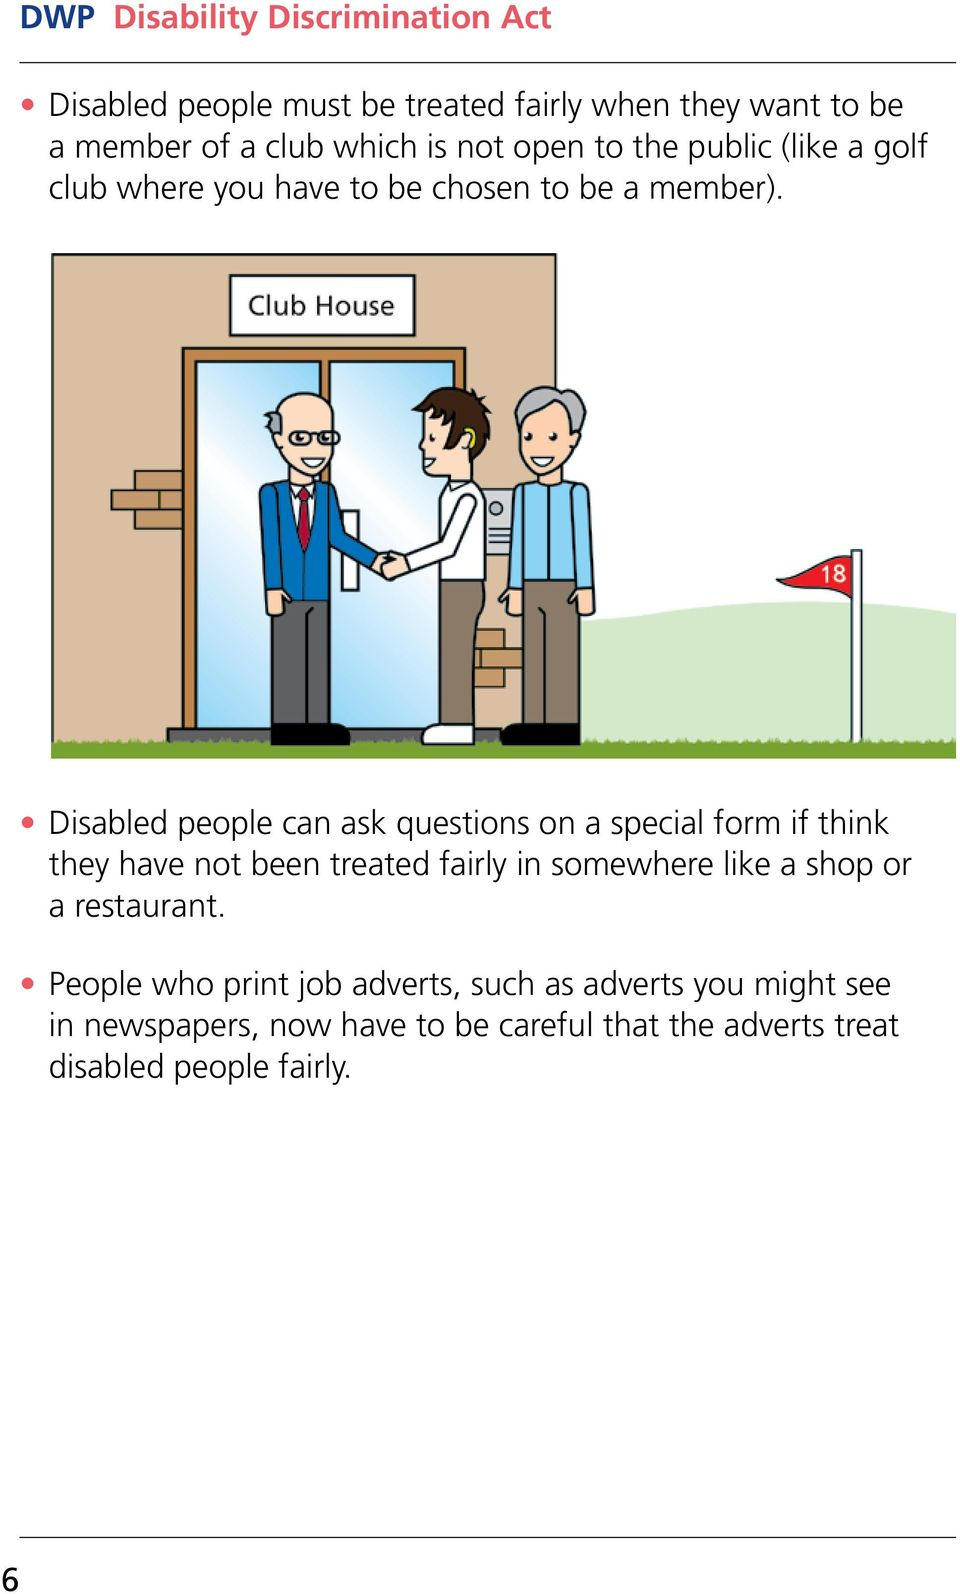 Disabled people can ask questions on a special form if think they have not been treated fairly in somewhere like a